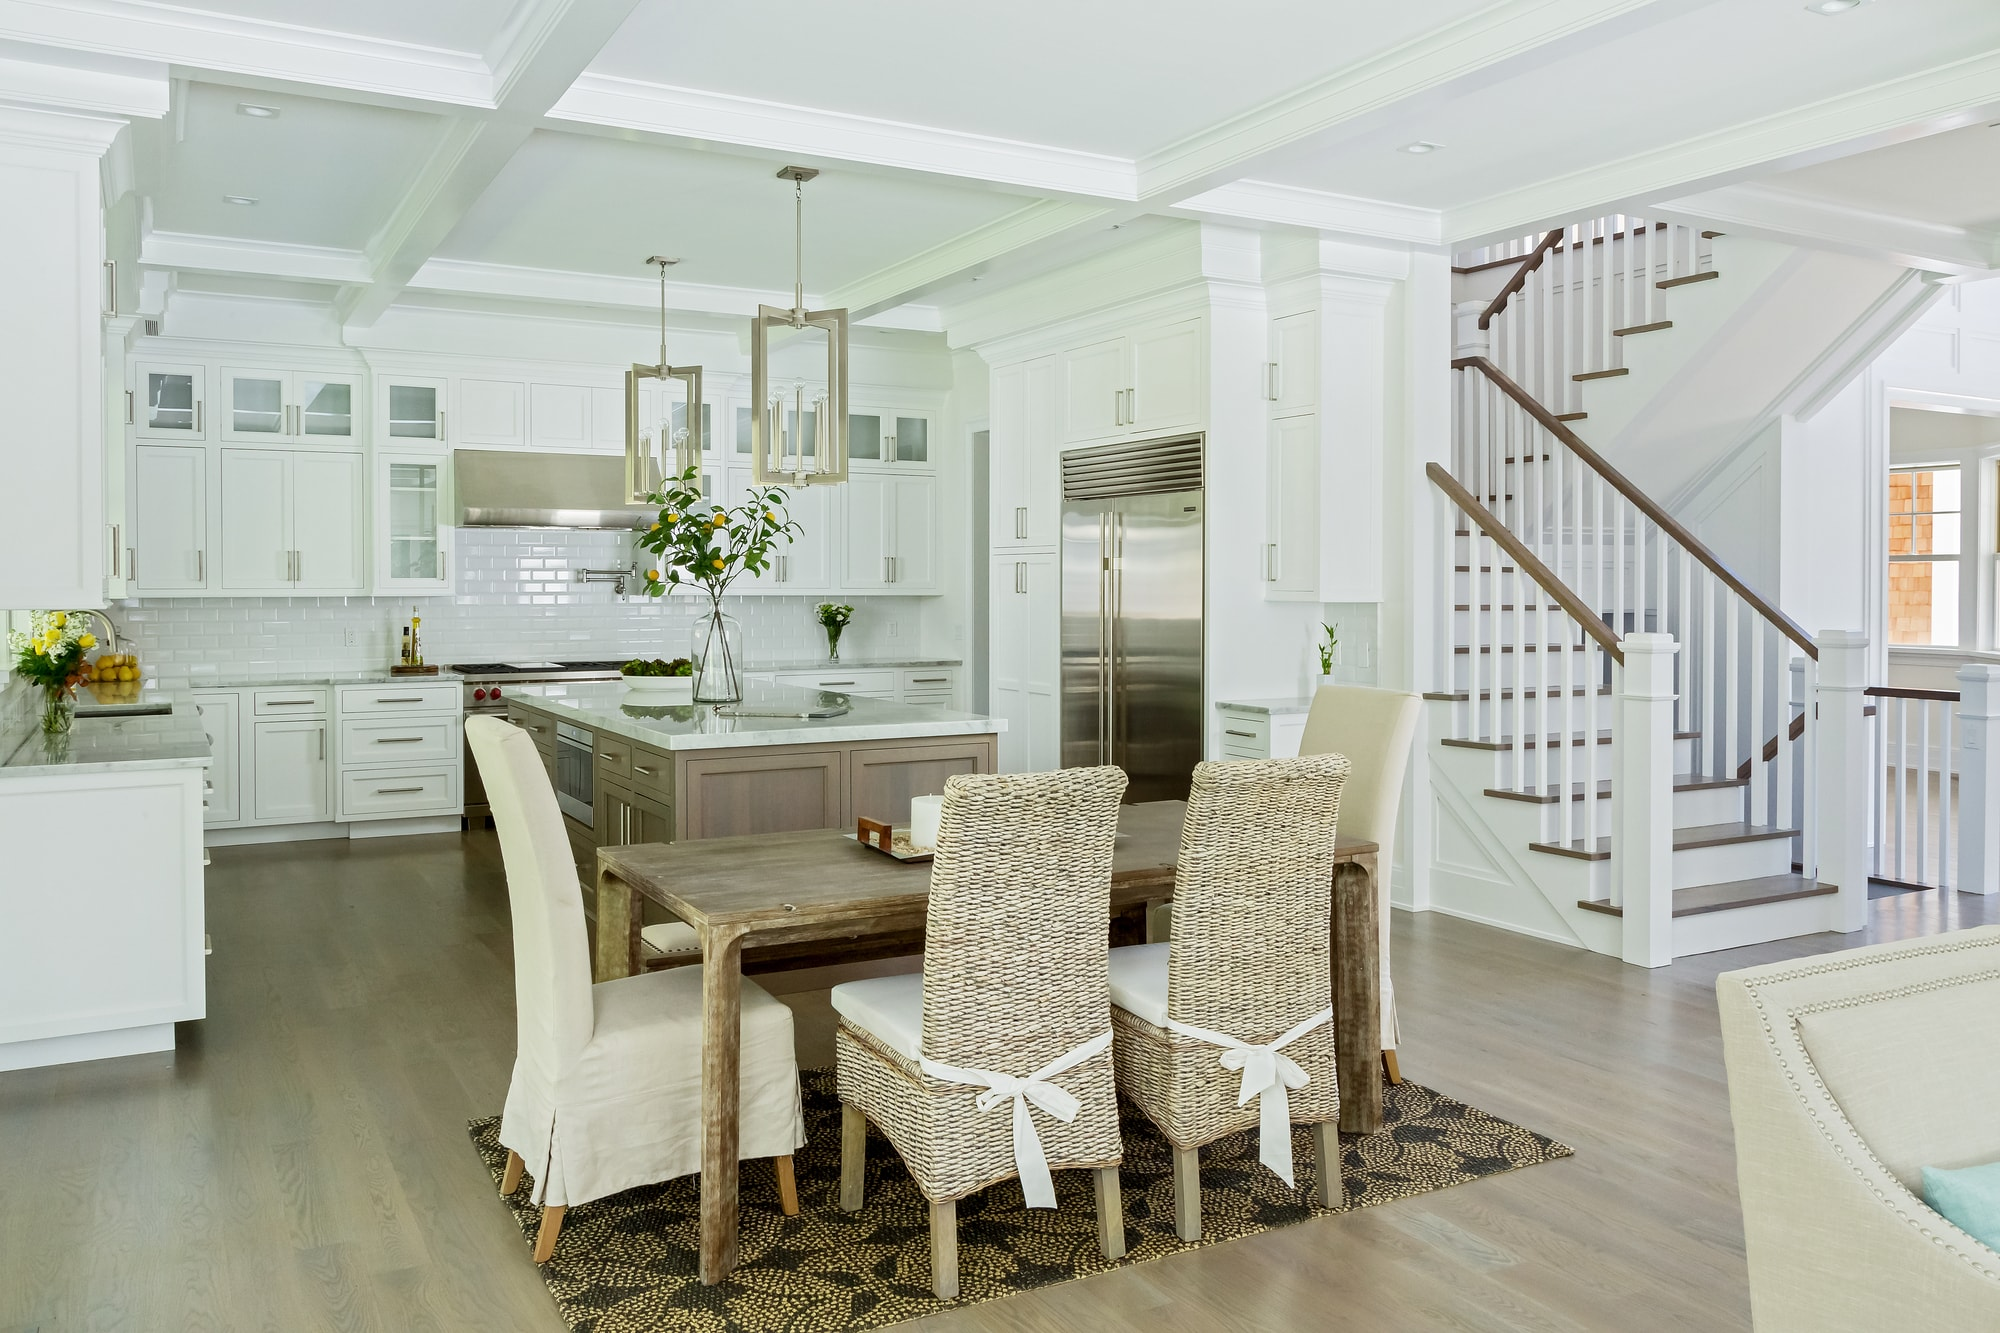 Copy of Transitional style kitchen with breakfast table